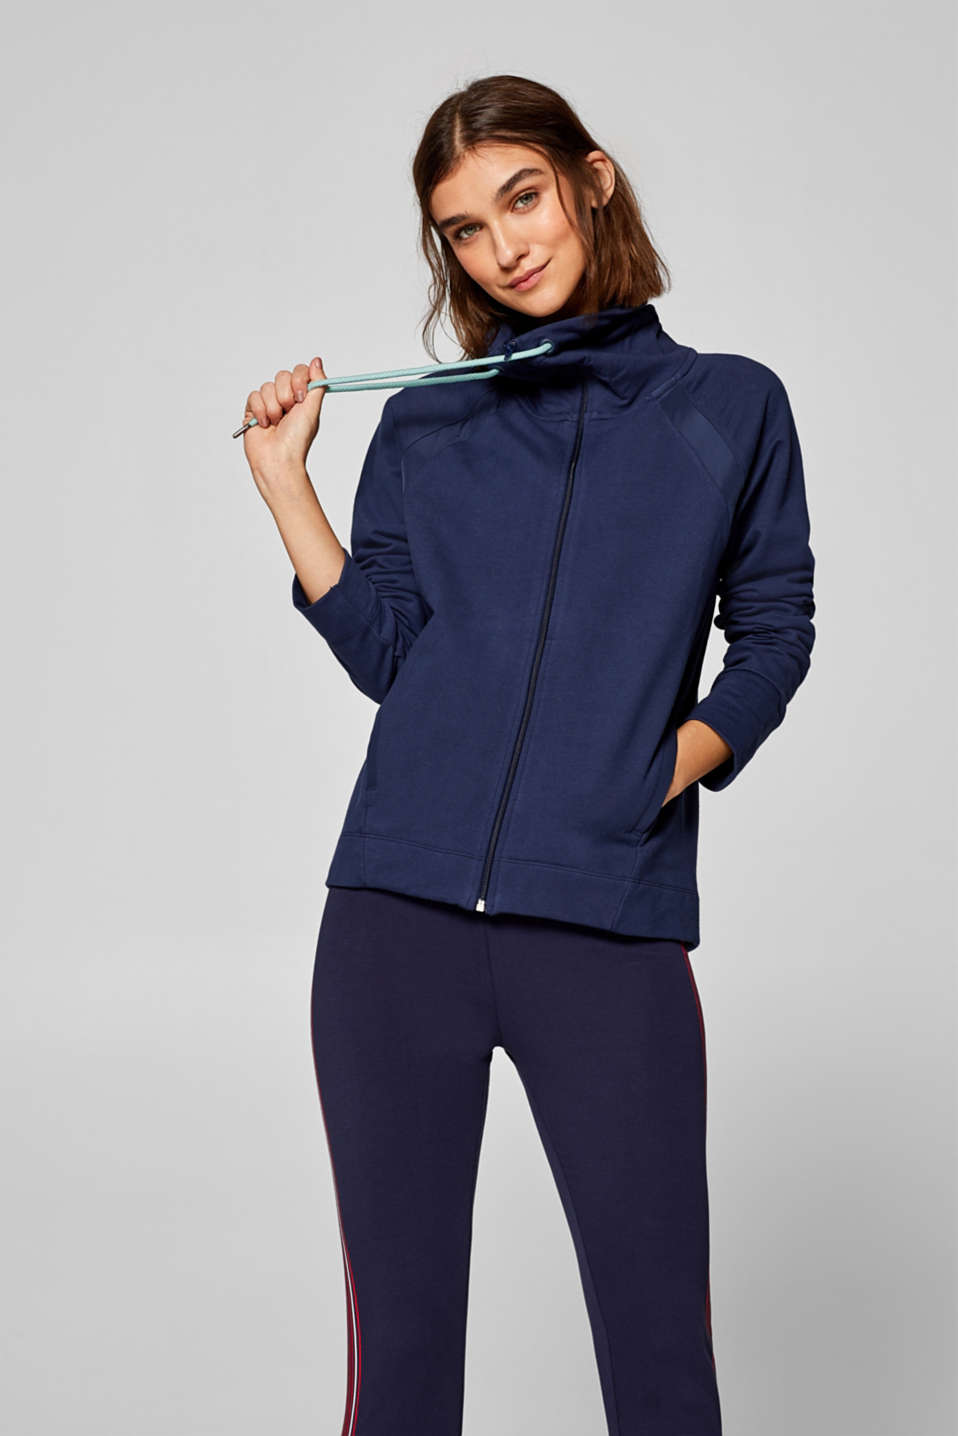 Esprit - Stretch jersey cardigan with an adjustable collar